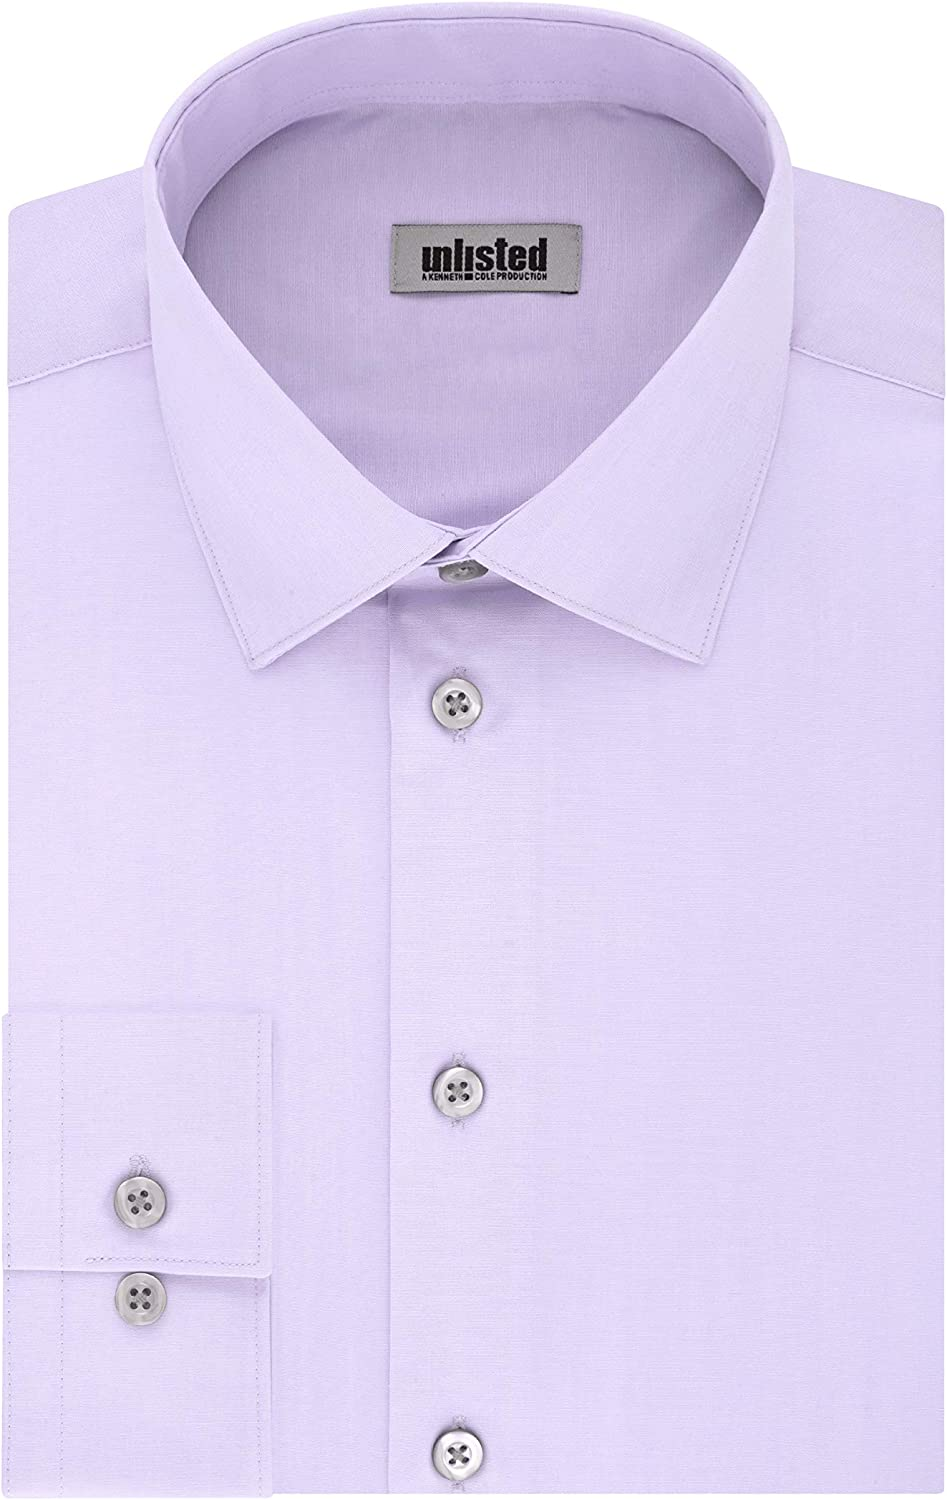 Free shipping anywhere in the nation Kenneth Cole Unlisted Men's Dress Tall Shirt and Max 43% OFF Big Solid